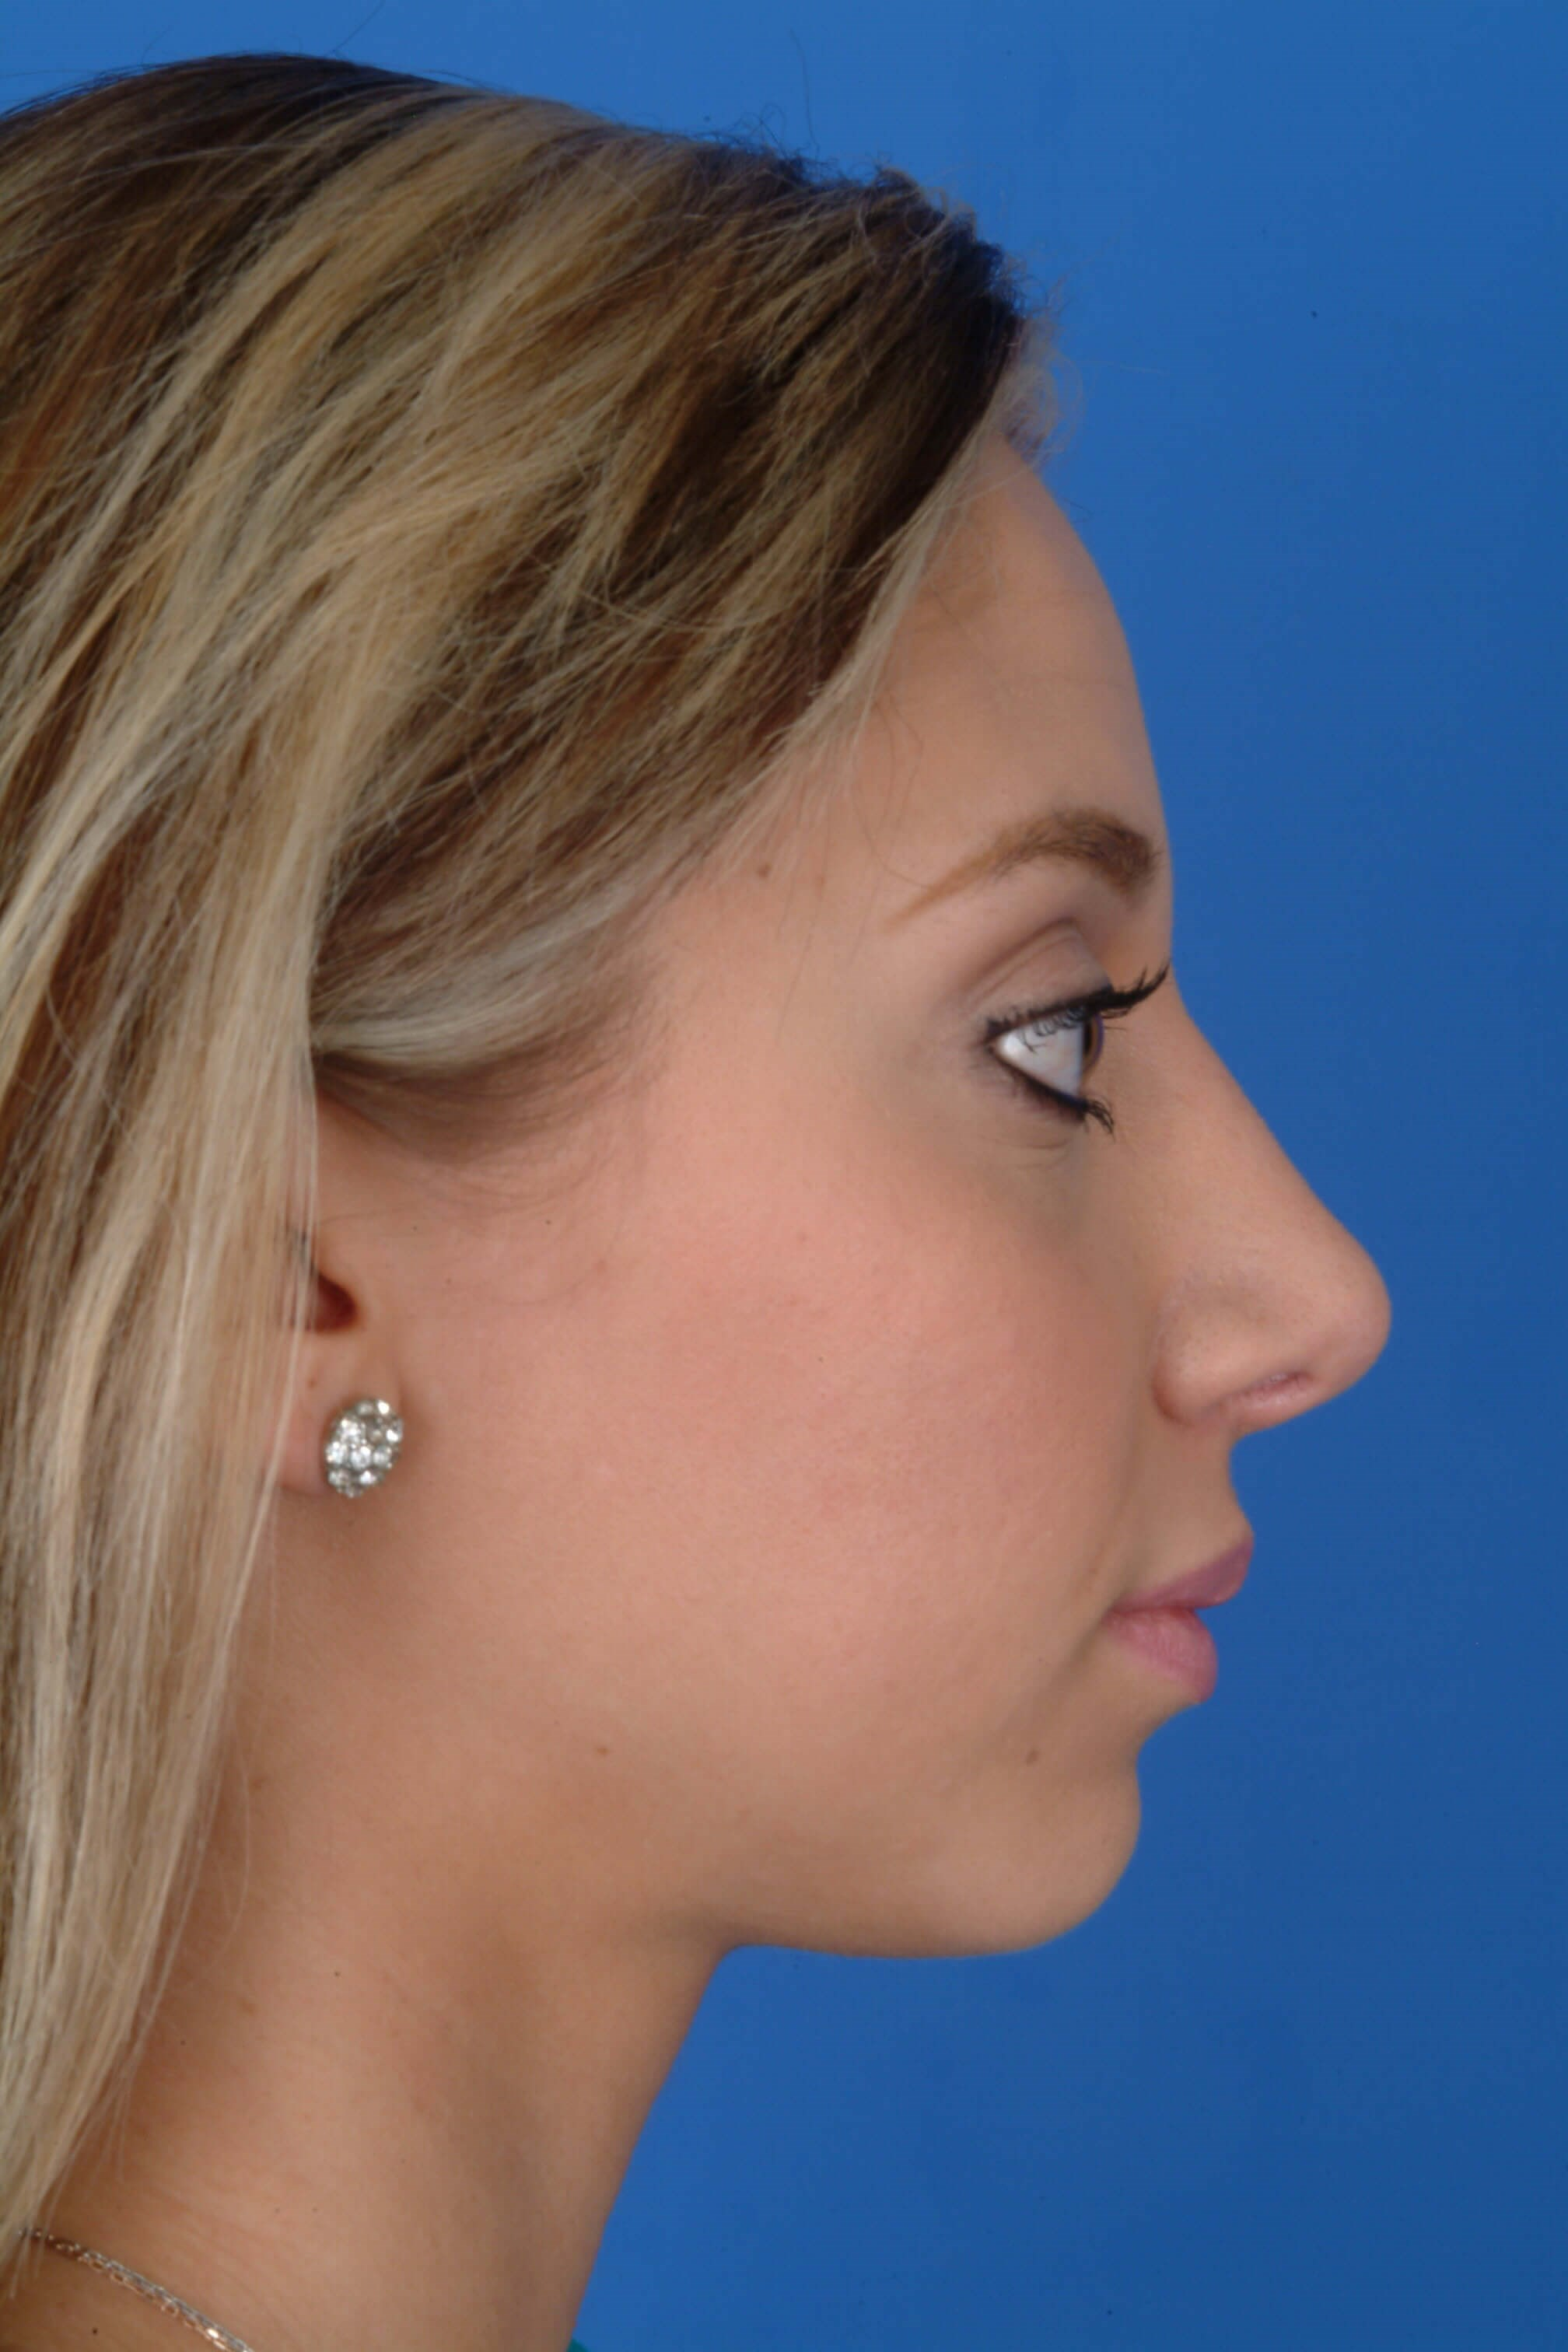 Profile View 6 months Post-Op Rhinoplasty